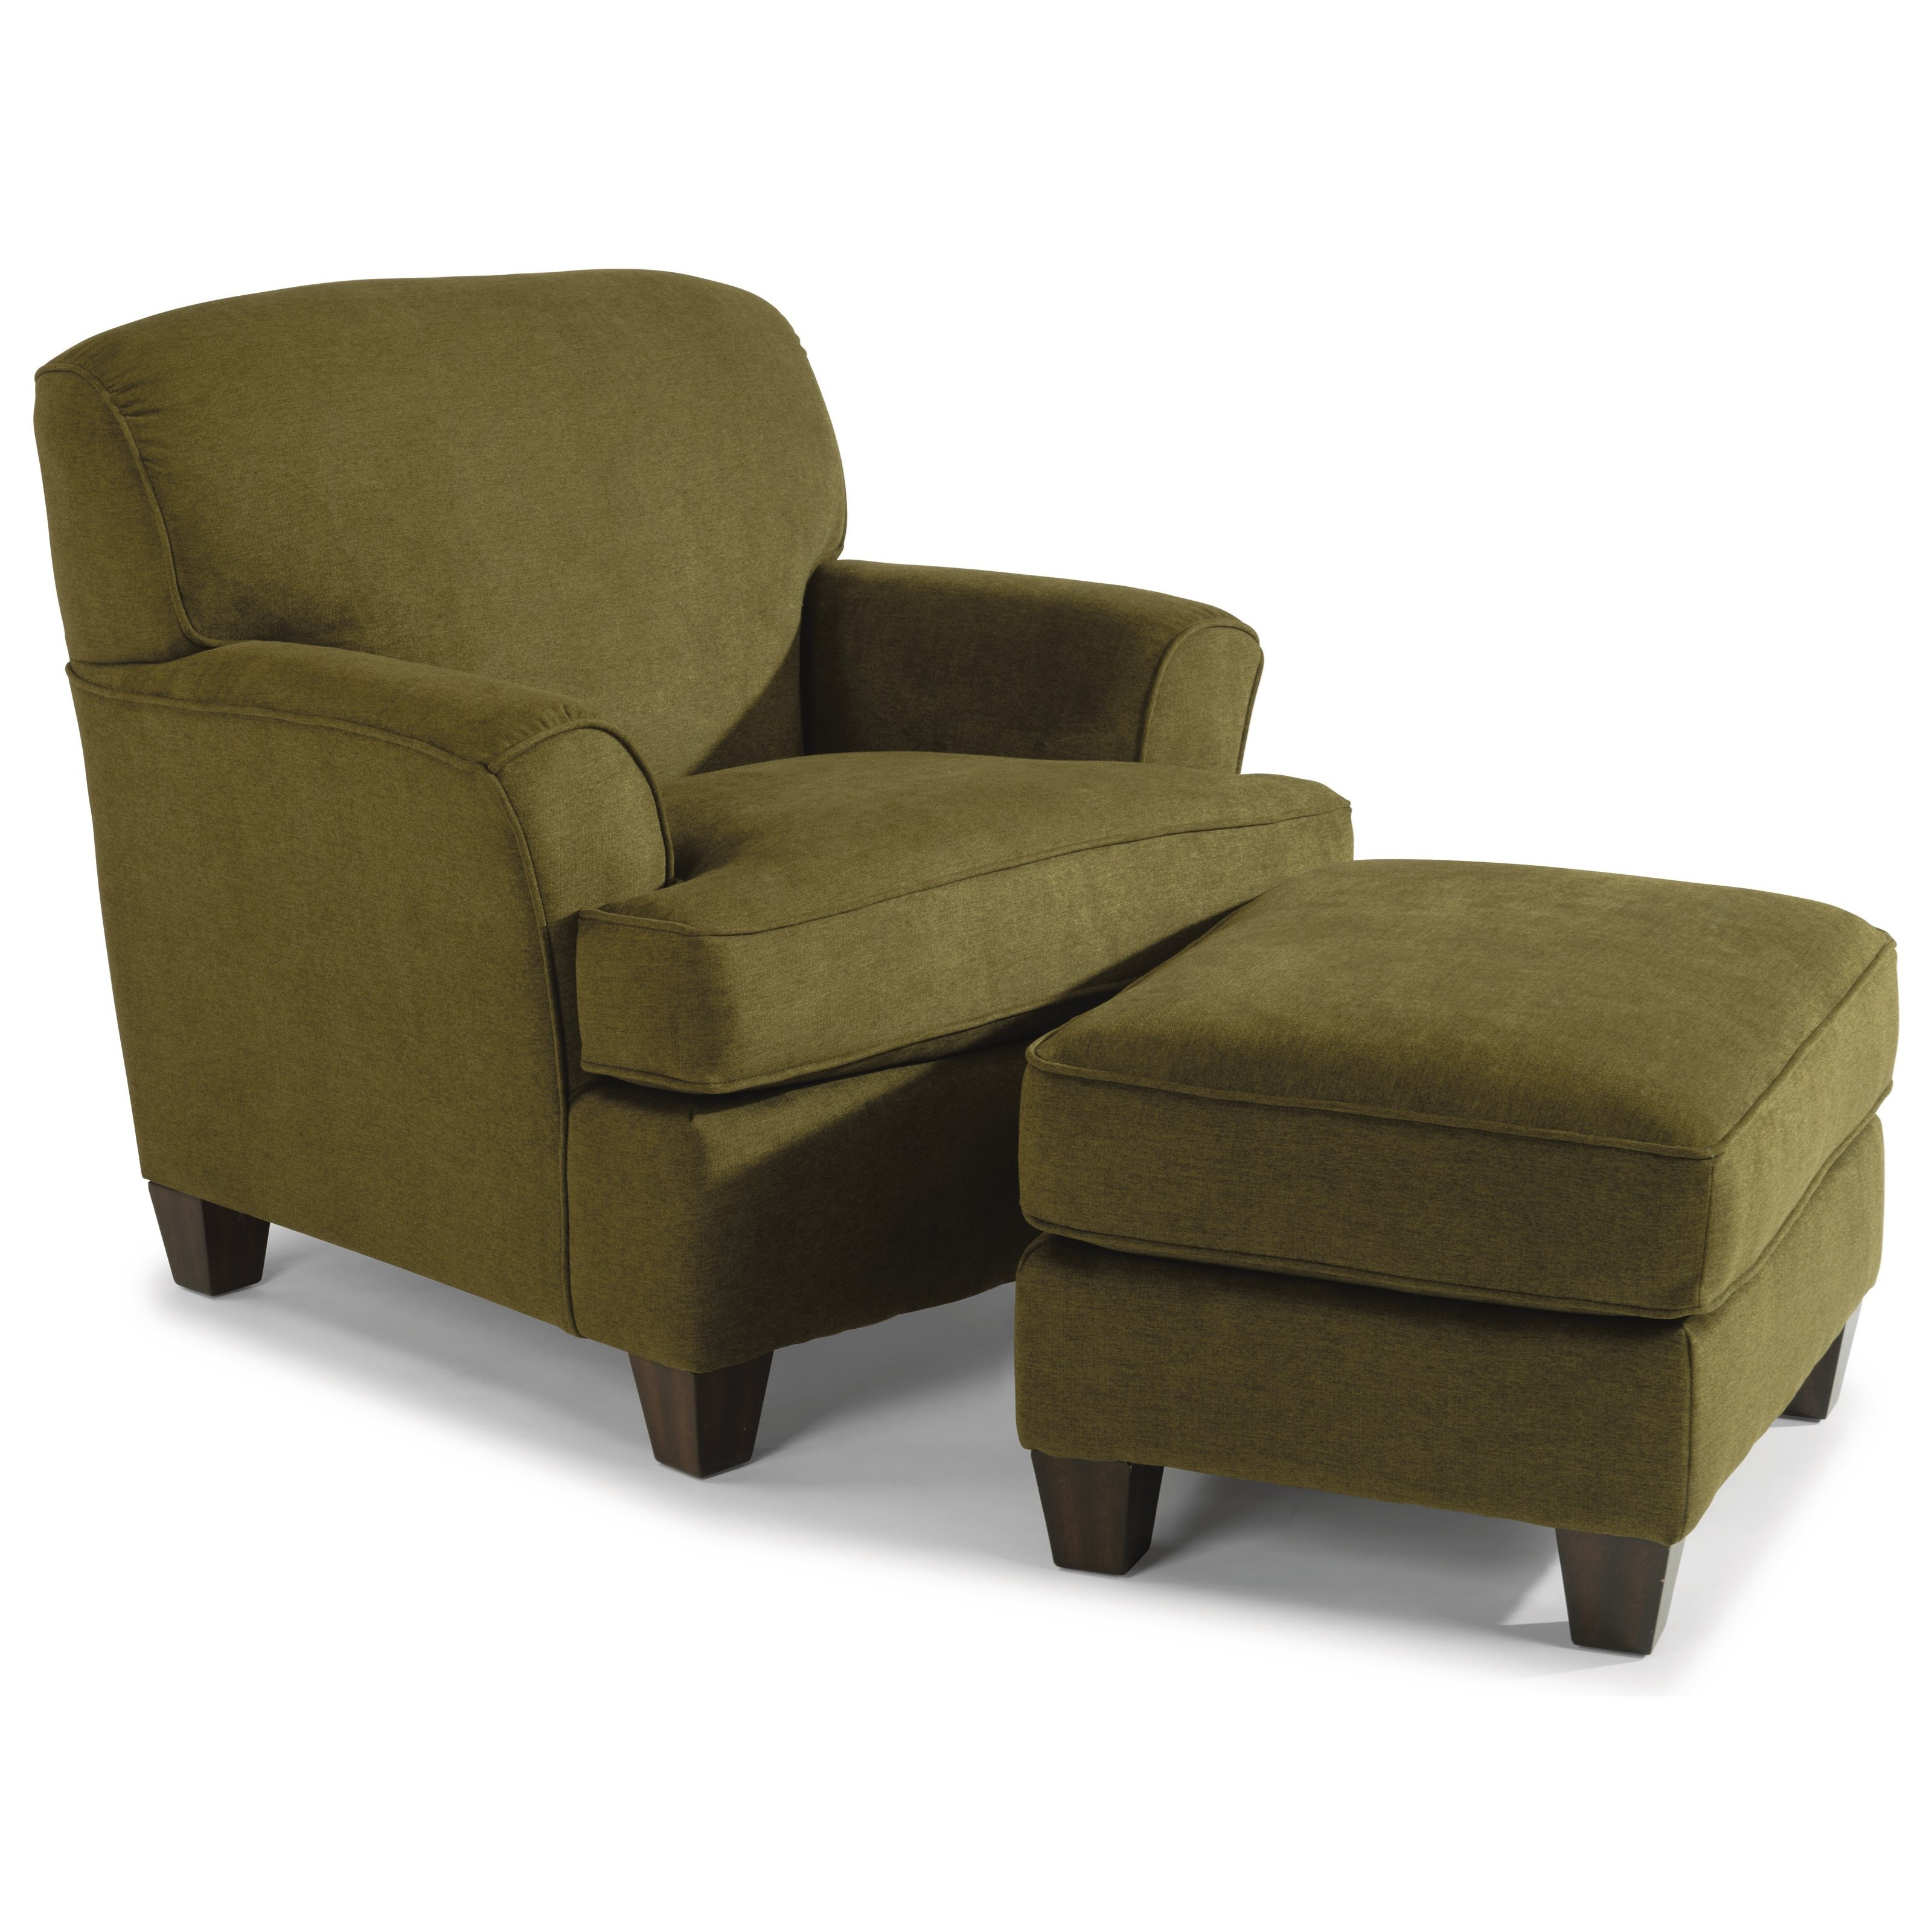 Atlantis Chair and Ottoman by Flexsteel at Williams & Kay